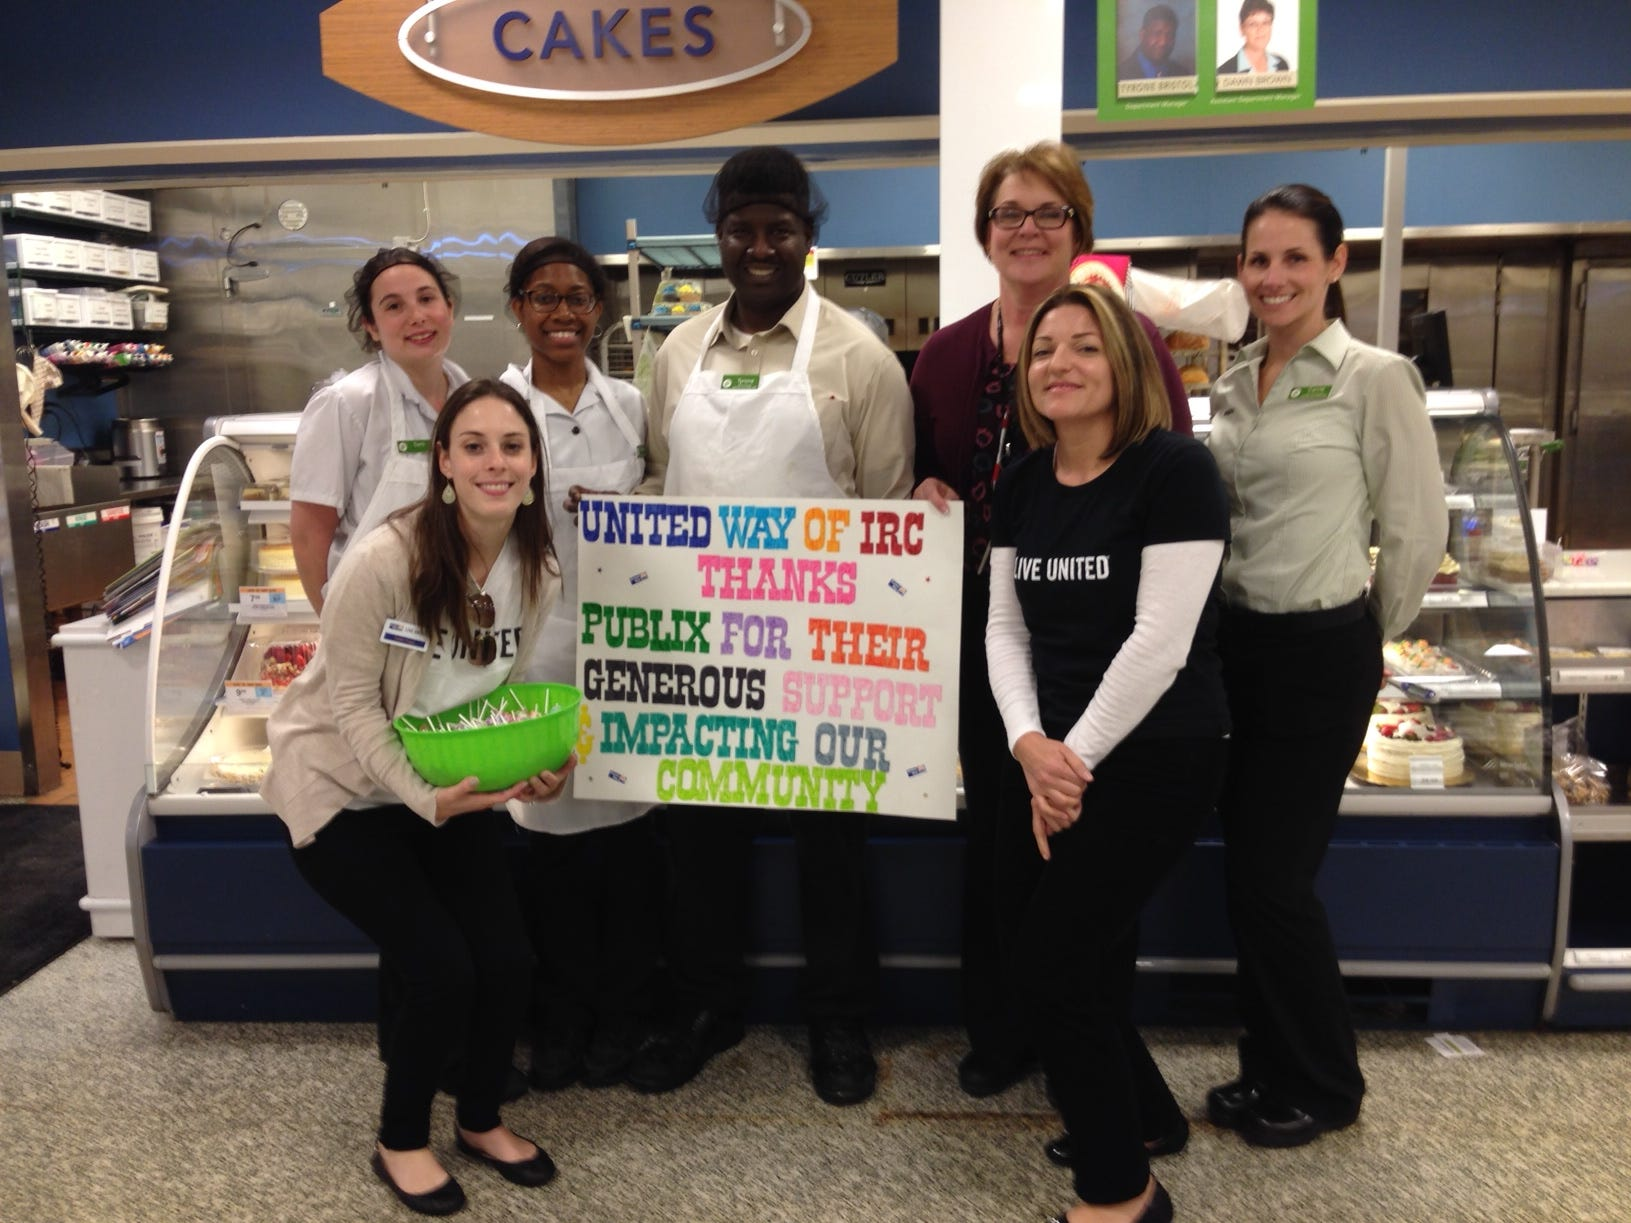 United Way of Indian River County thanks Publix employees for their continued support.